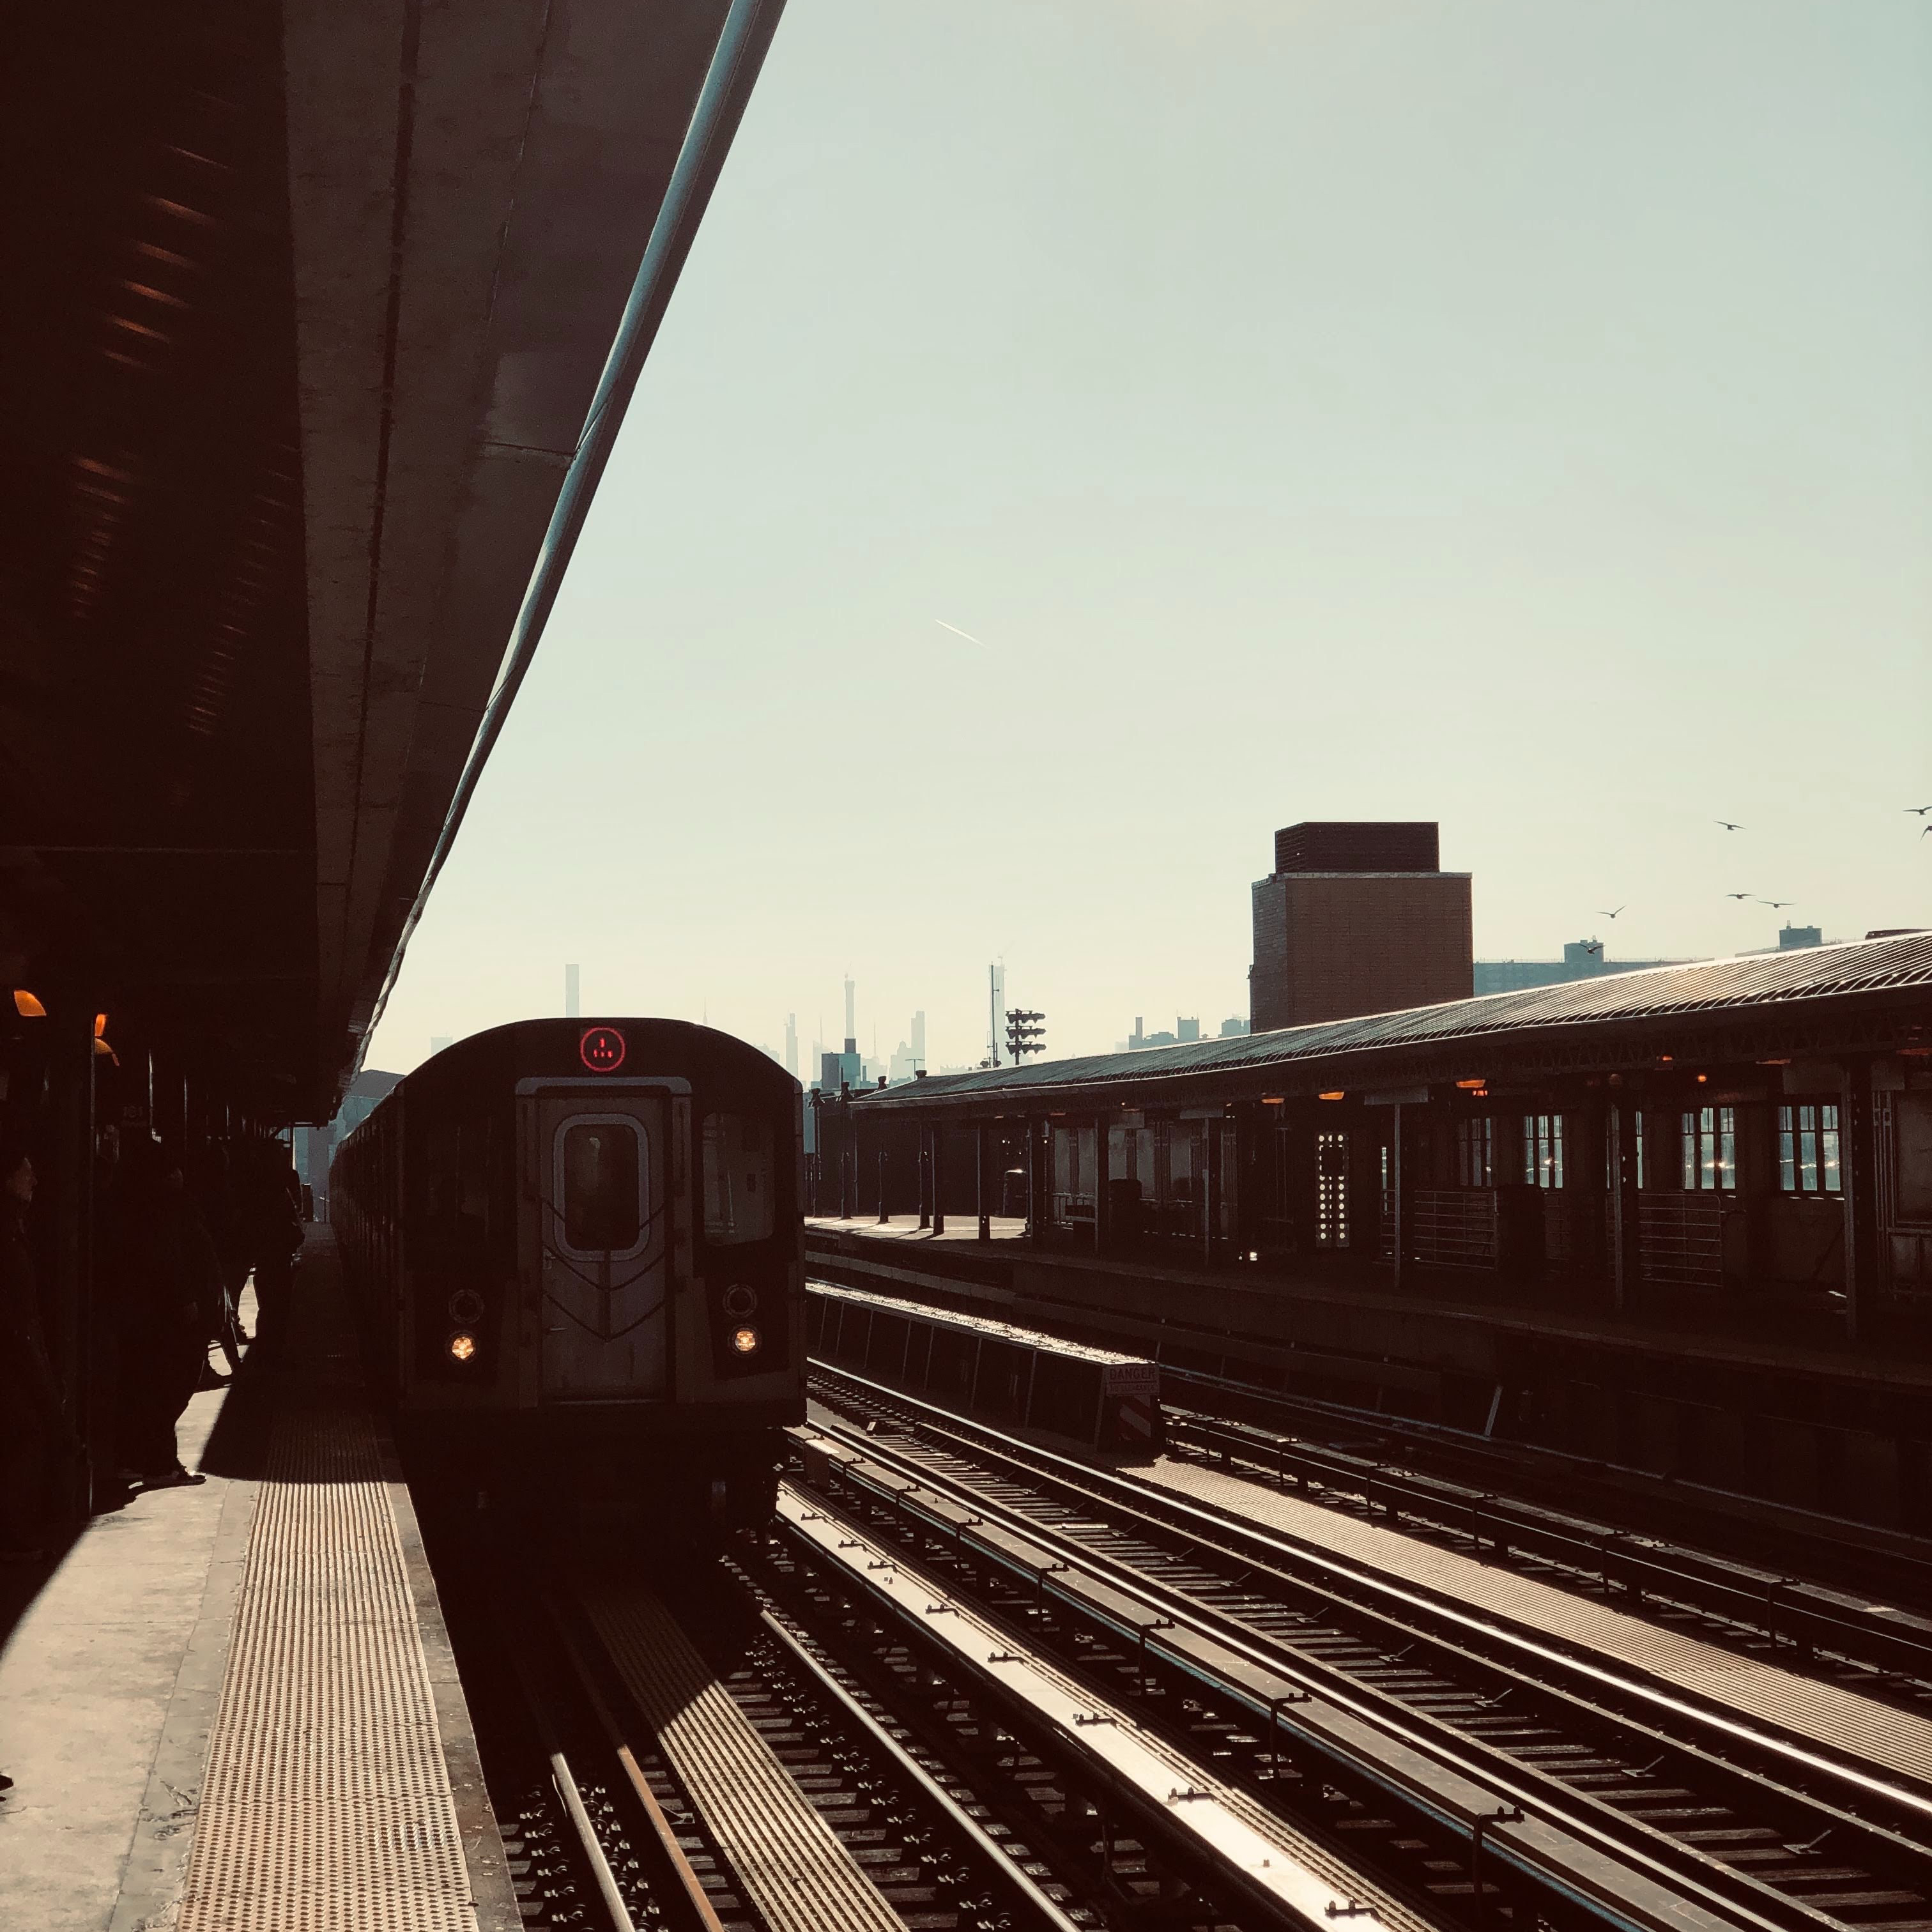 New York City Train pulling into the train station on an above ground platform in The Bronx